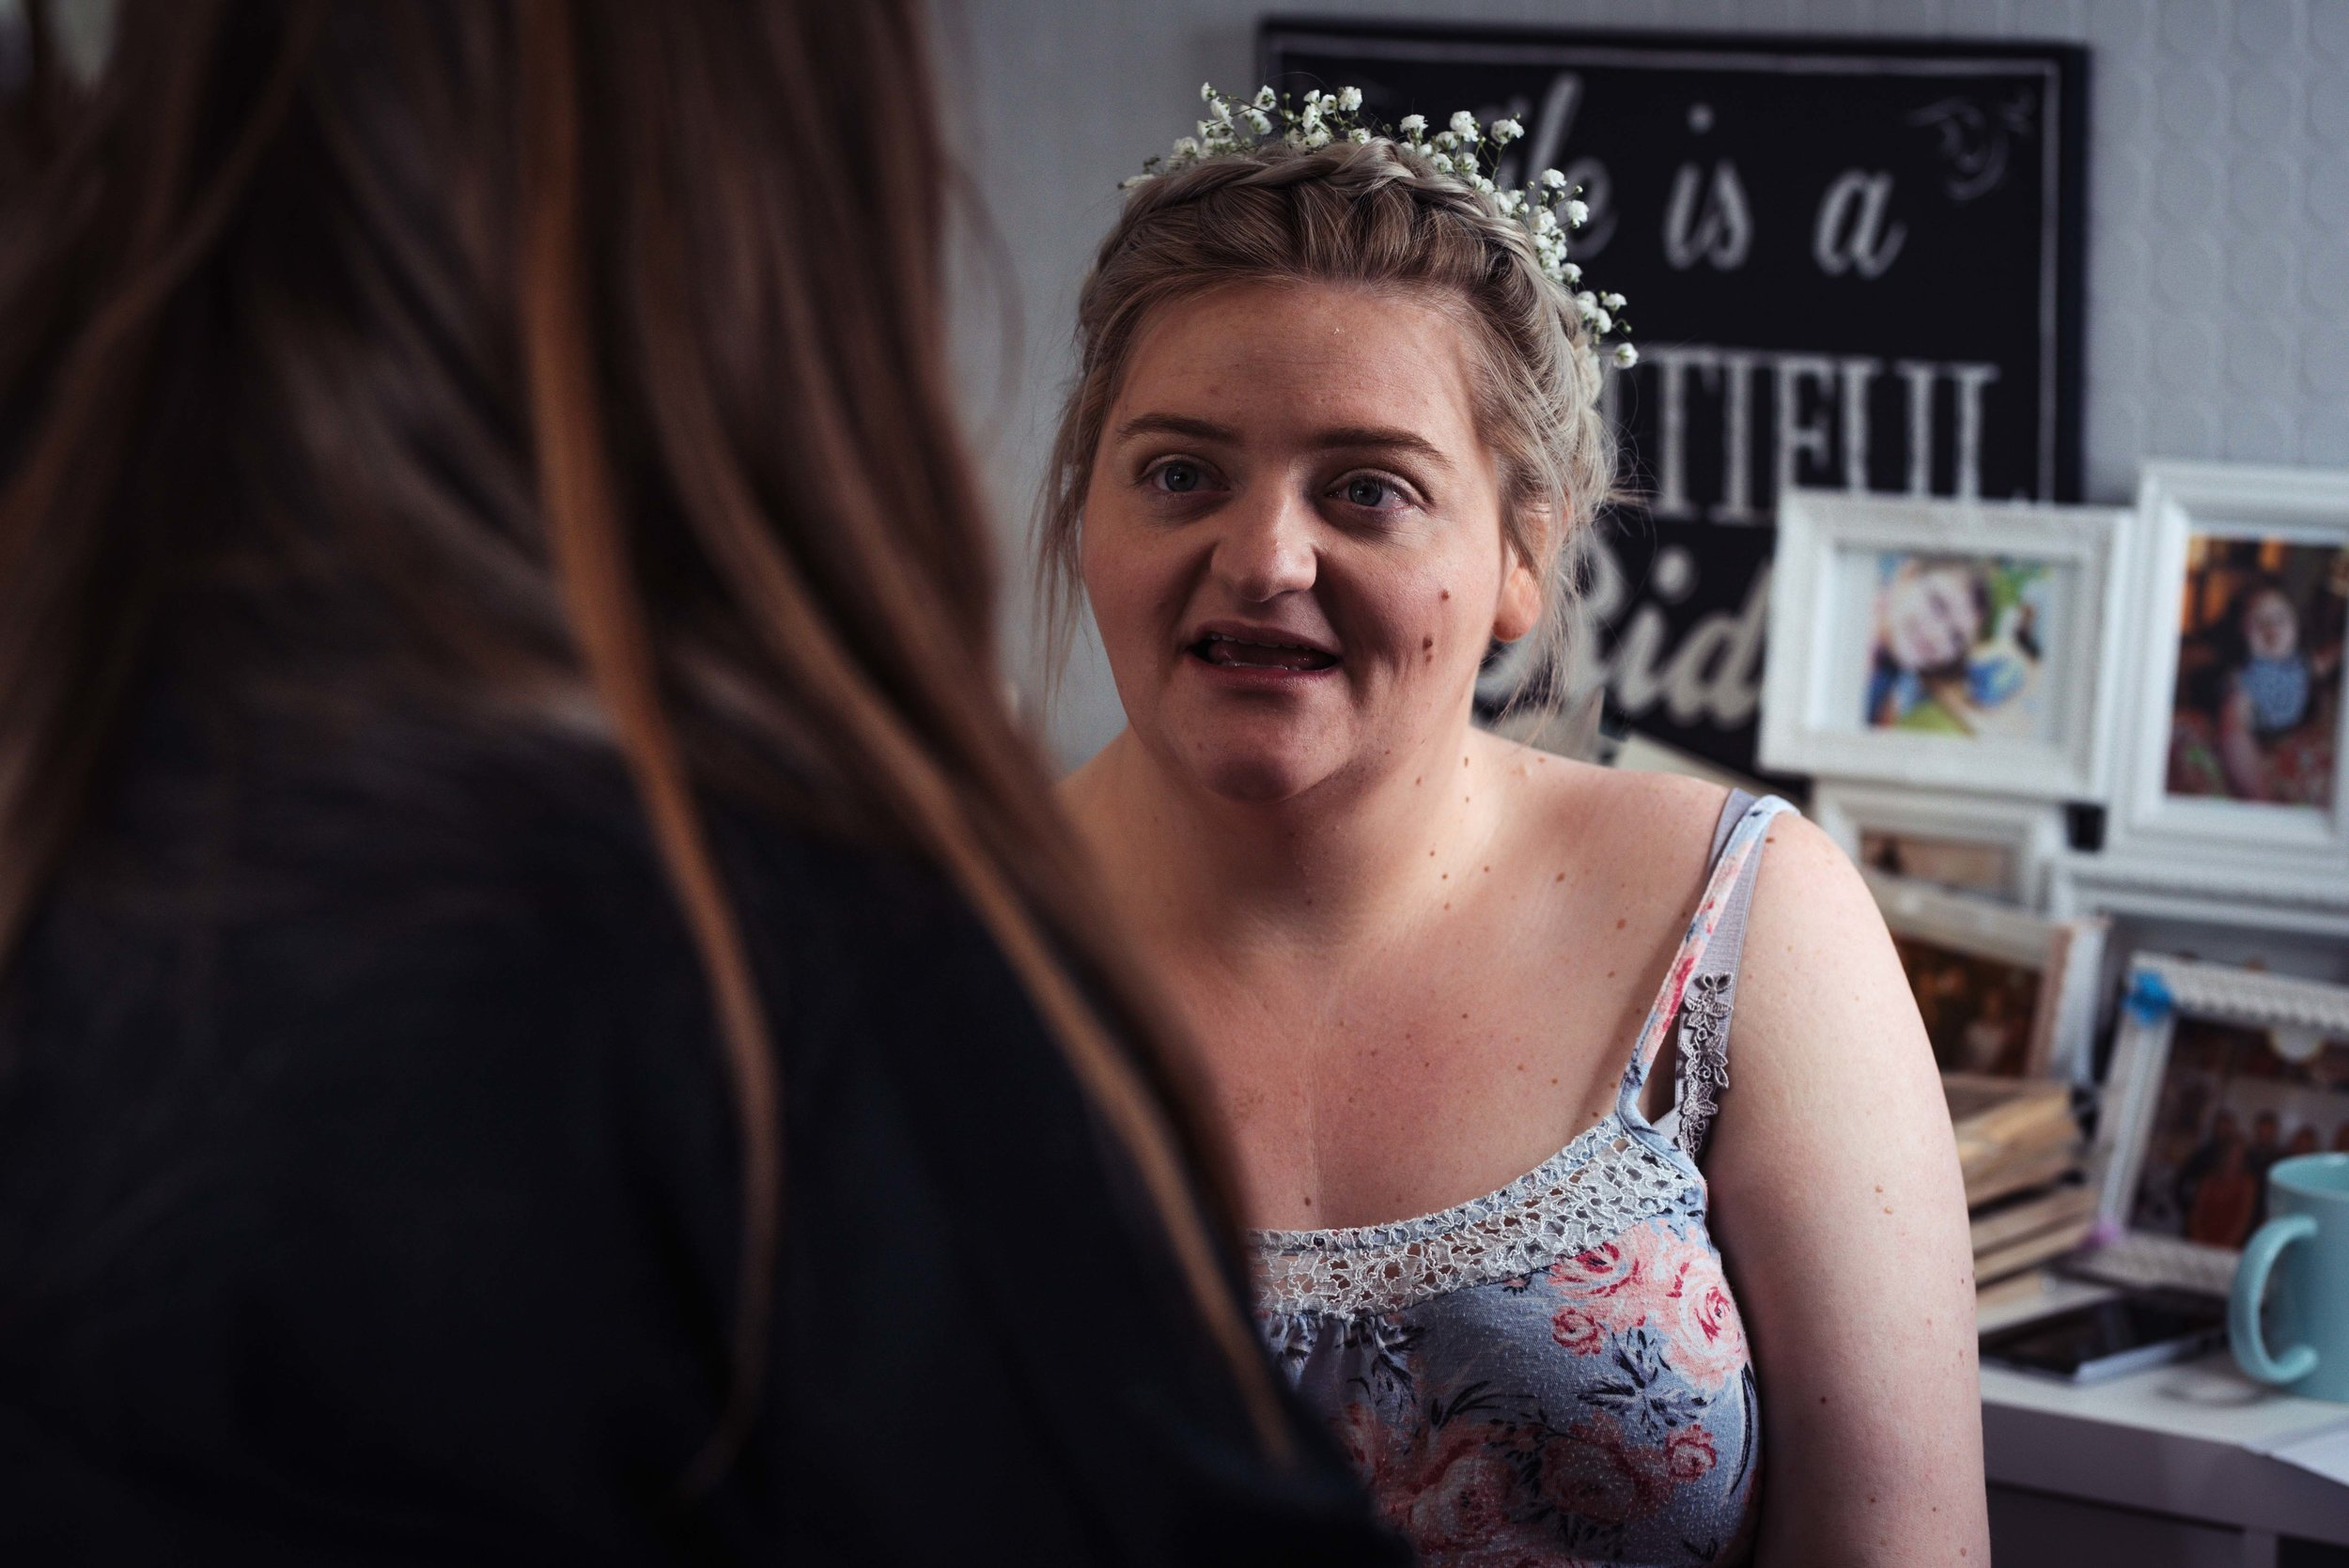 Bride having her makeup done before the wedding